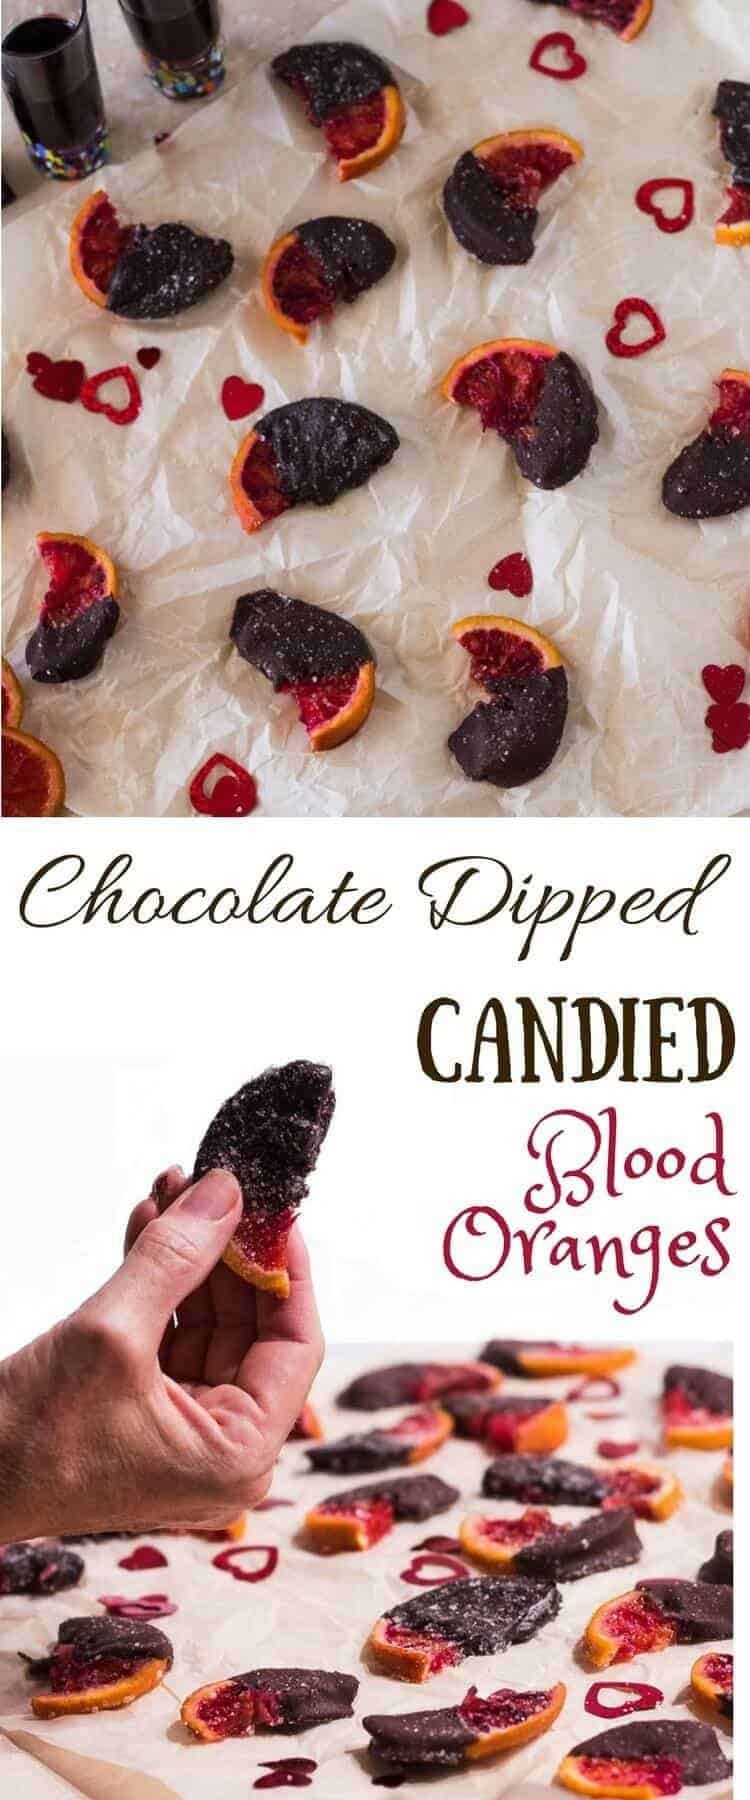 Chocolate Dipped Candied Blood Oranges - beautiful, rich, sweet, salty treat... perfect for your loved one on Valentine's Day! candied oranges | chocolate recipes | blood oranges | Valentine's Day treats